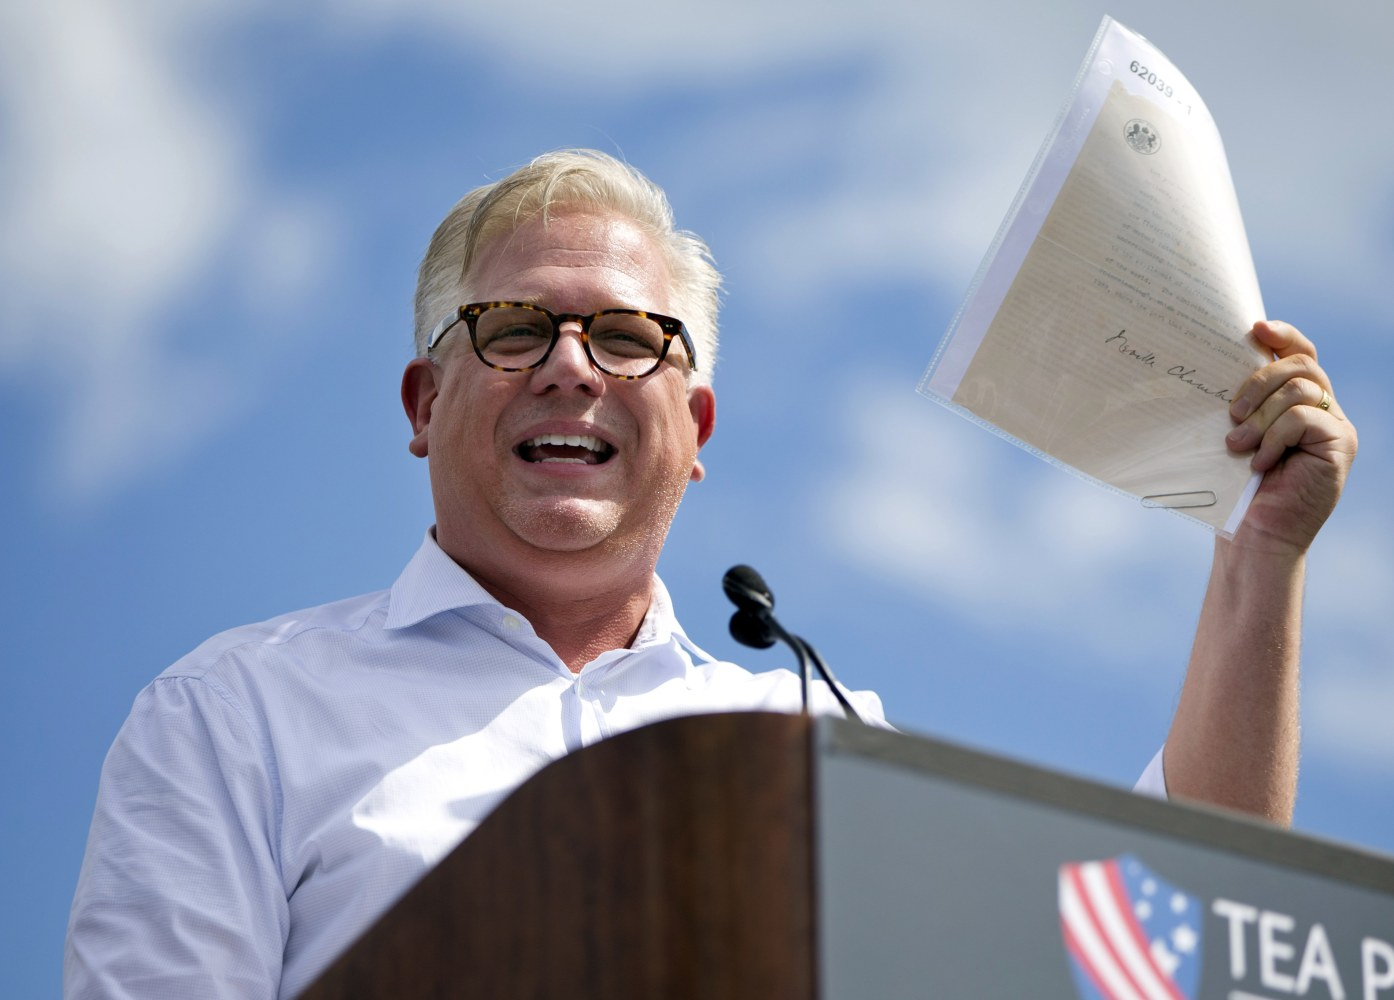 Glenn beck speaks at a tea party rally in september on the west lawn